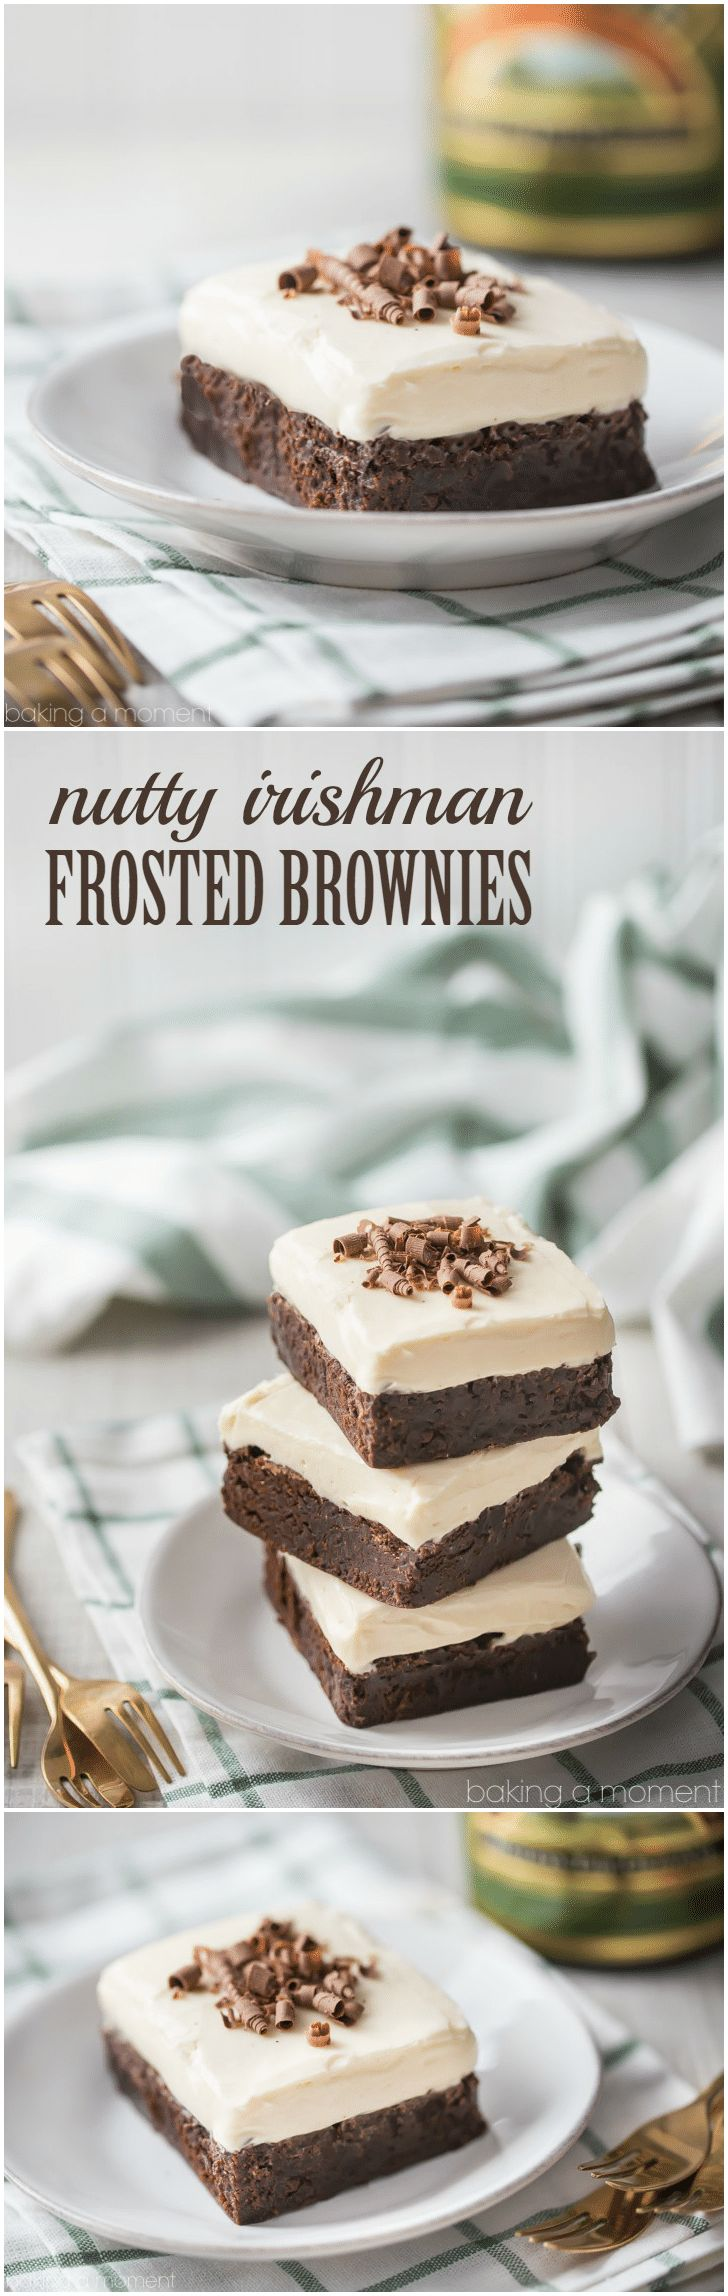 Nutty Irishman Frosted Brownies: Omg the combination of Bailey's, hazelnut, and fudgy chocolate brownie is insane!  Really simple and straightforward recipe, I'll definitely be making it again.   food desserts chocolate via @Allie Baking a Moment